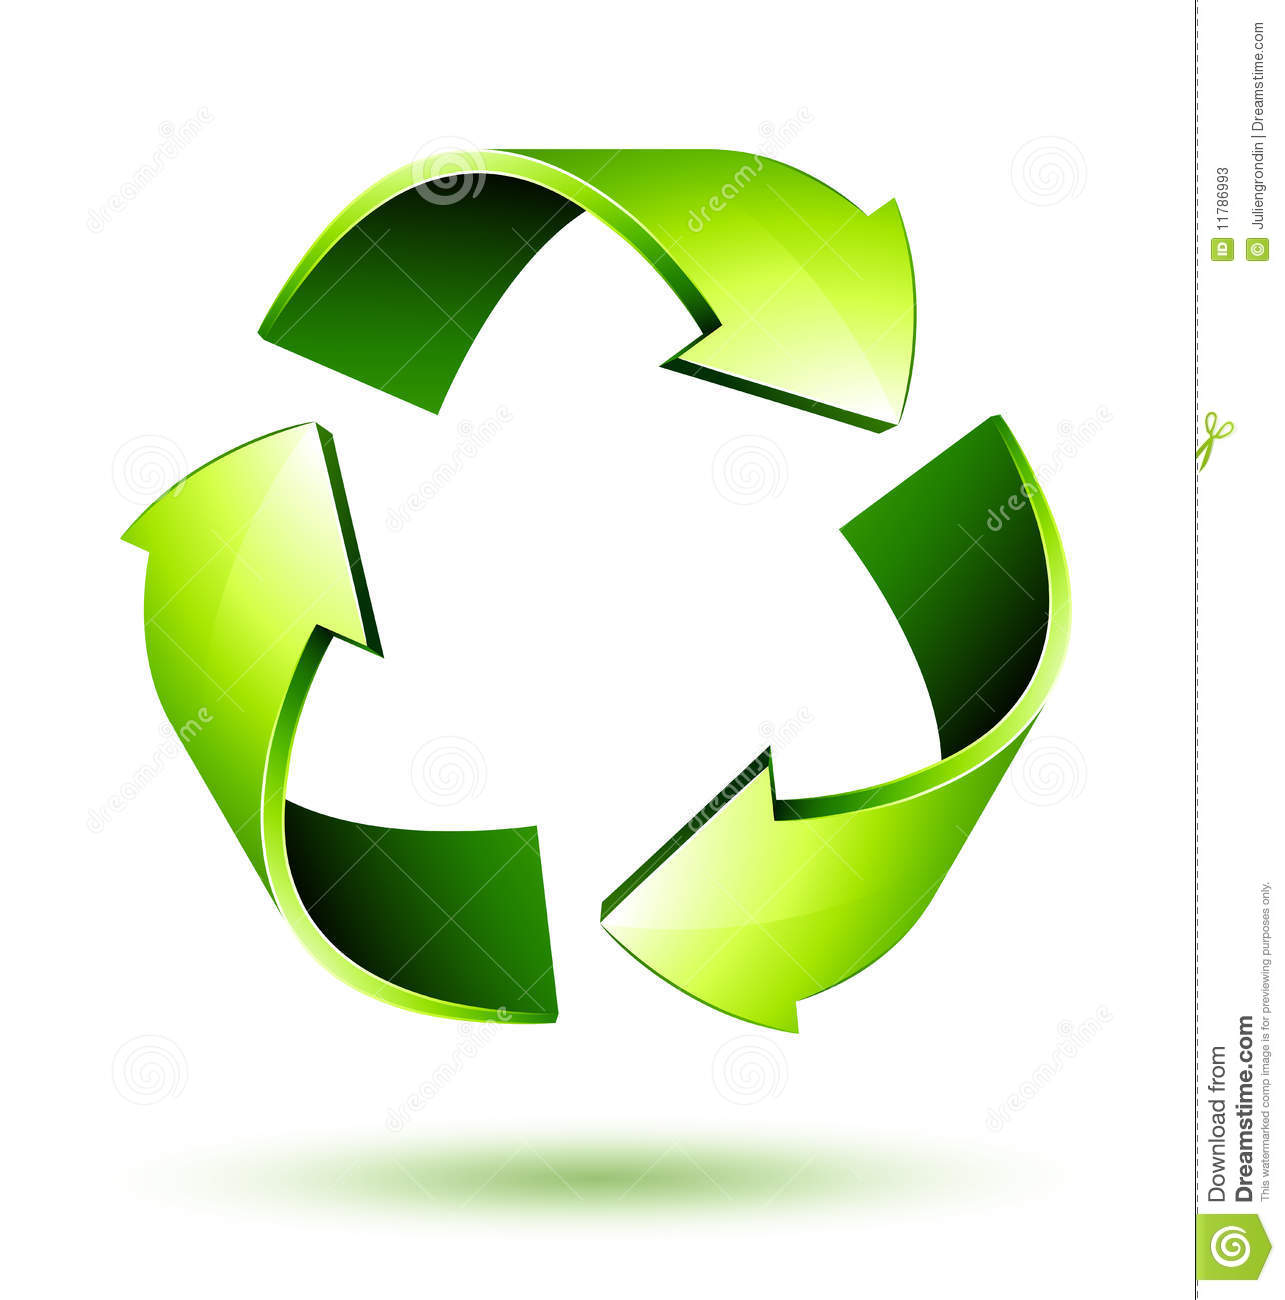 Recycle arrow clipart image freeuse stock Recycle Arrows. Recycle Symbol Stock Photos - Image: 11786993 image freeuse stock